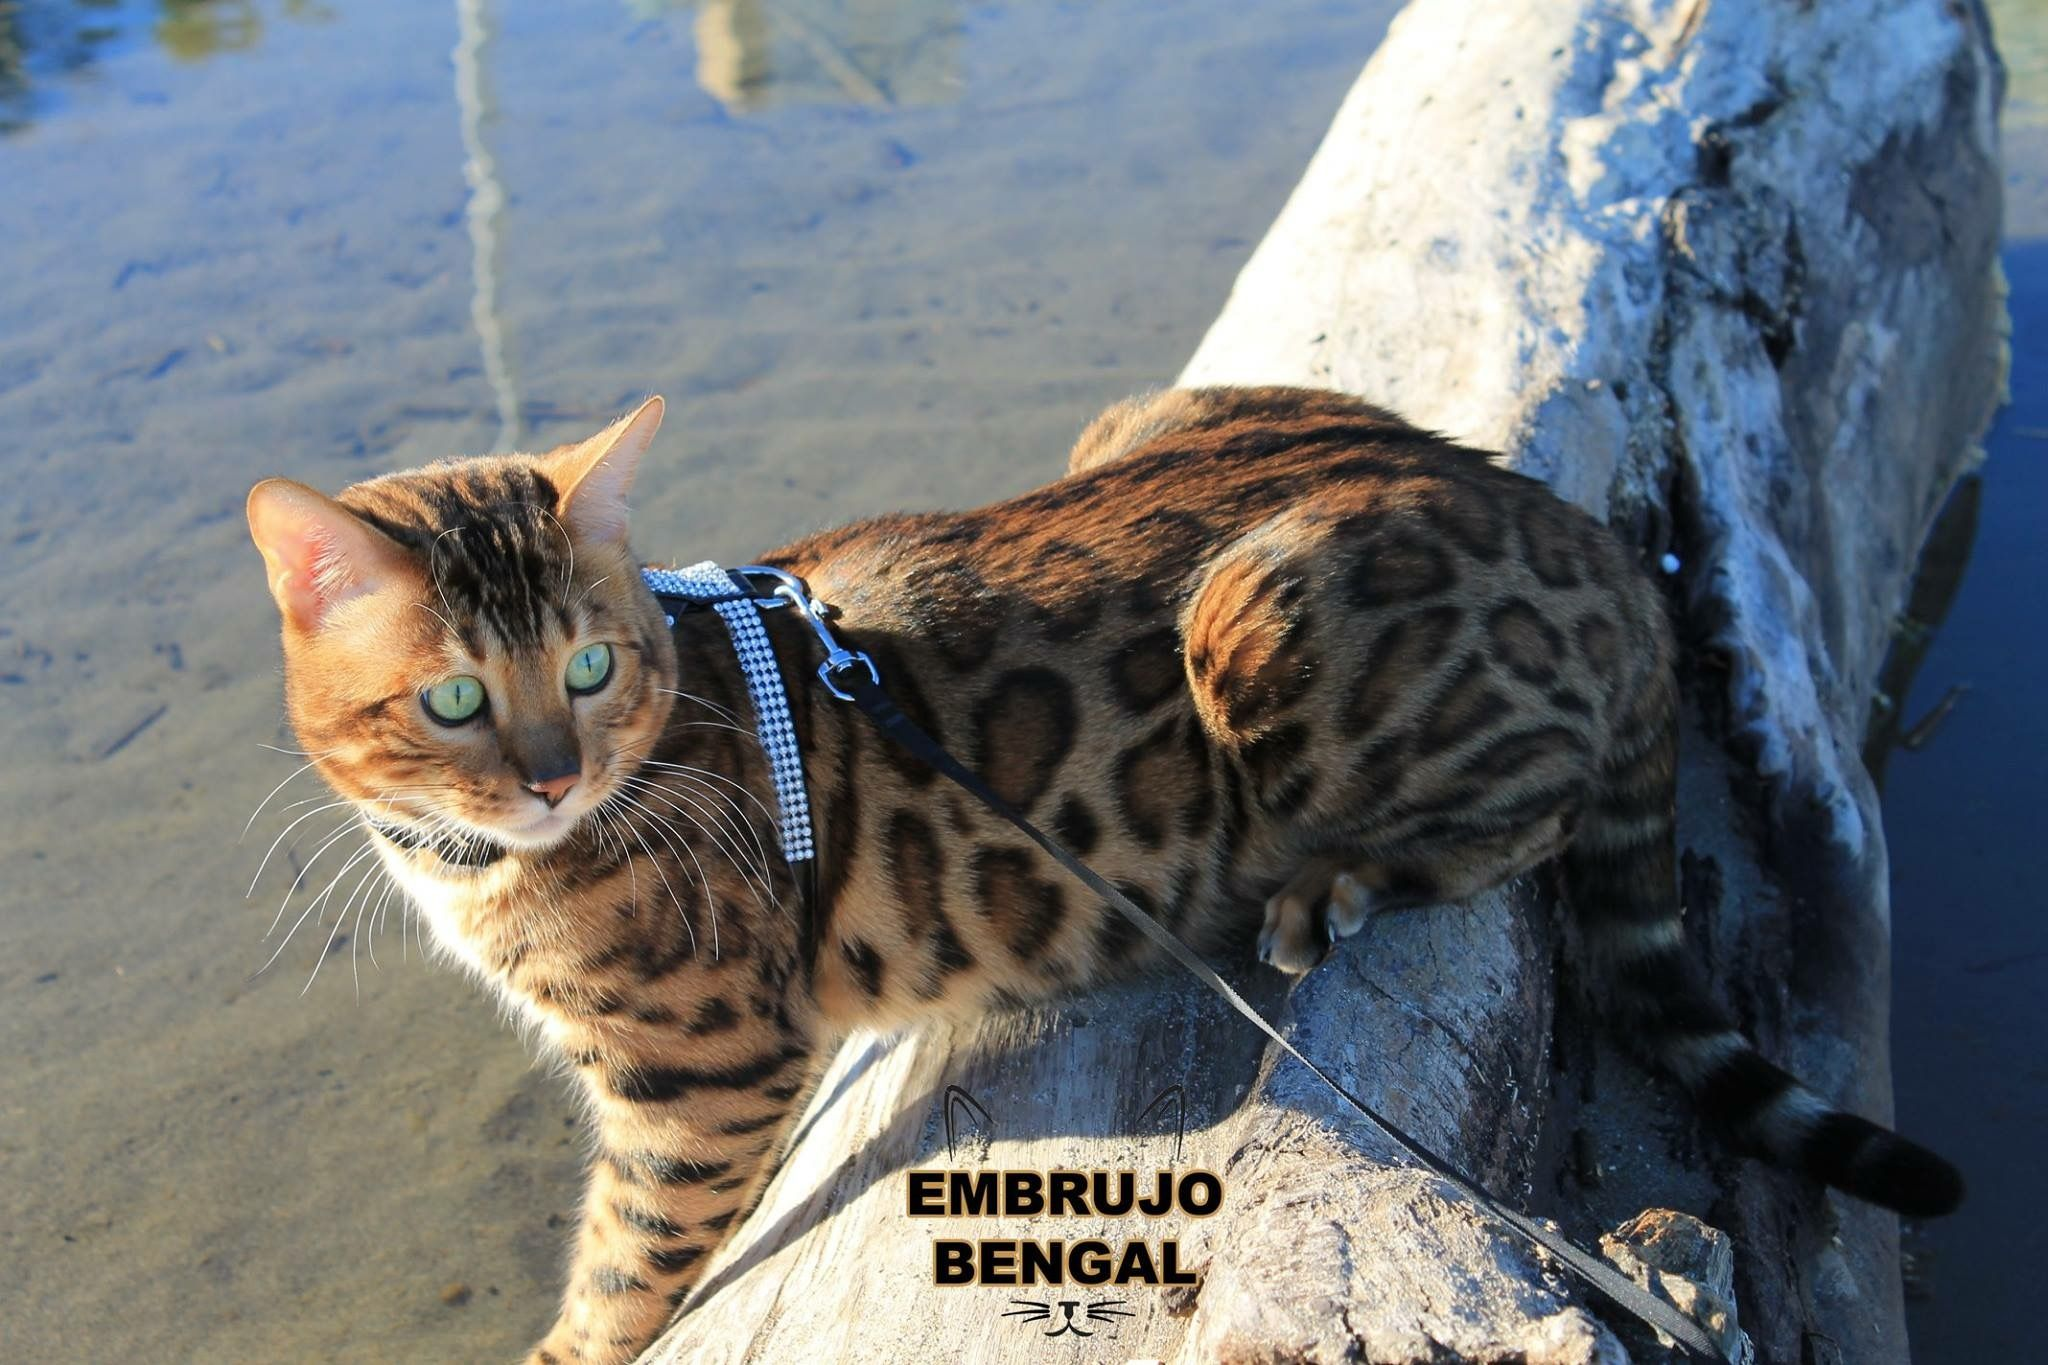 Pin by Cristina Plaza on Bengal cat | Pinterest